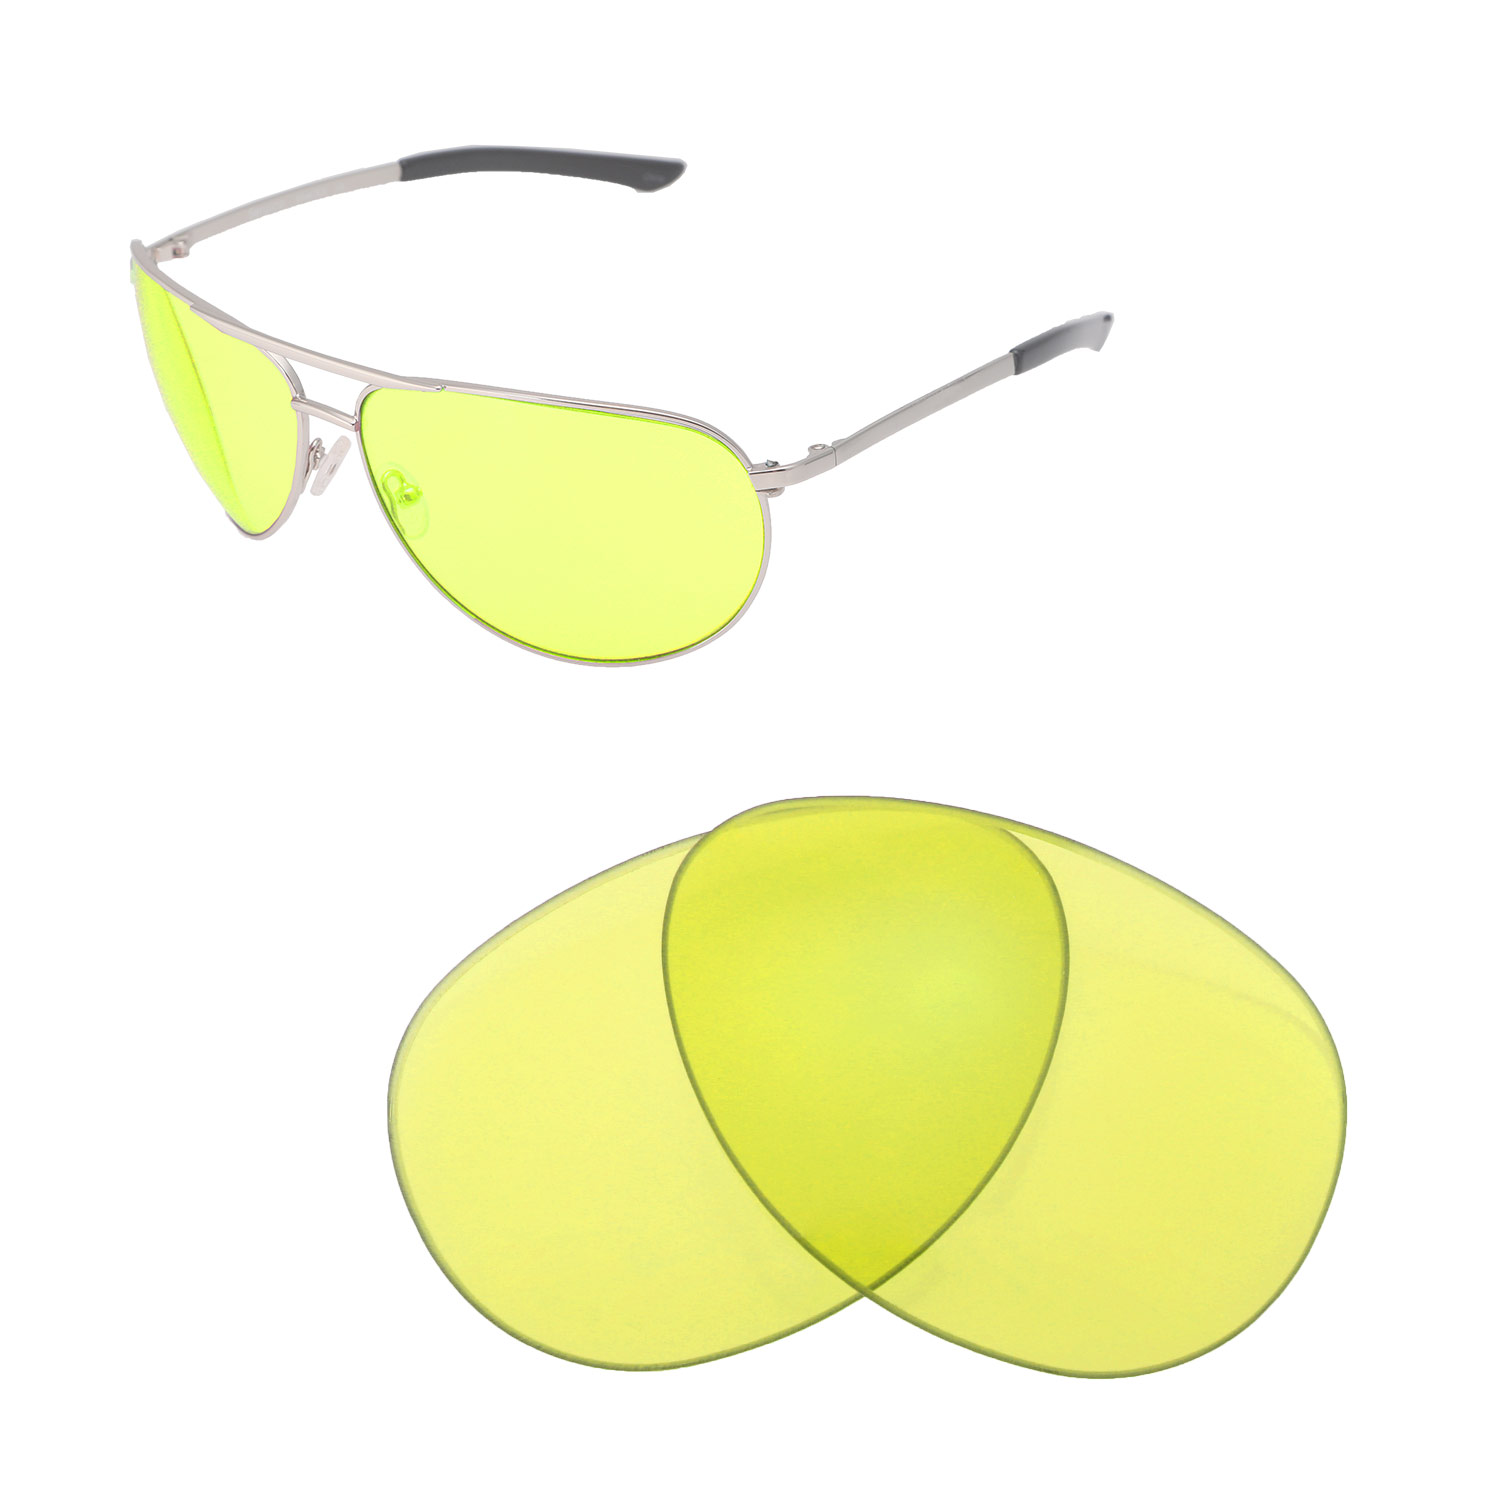 d520516032 Details about New Walleva Yellow Non-Polarized Replacement Lenses For Smith  Serpico Sunglasses